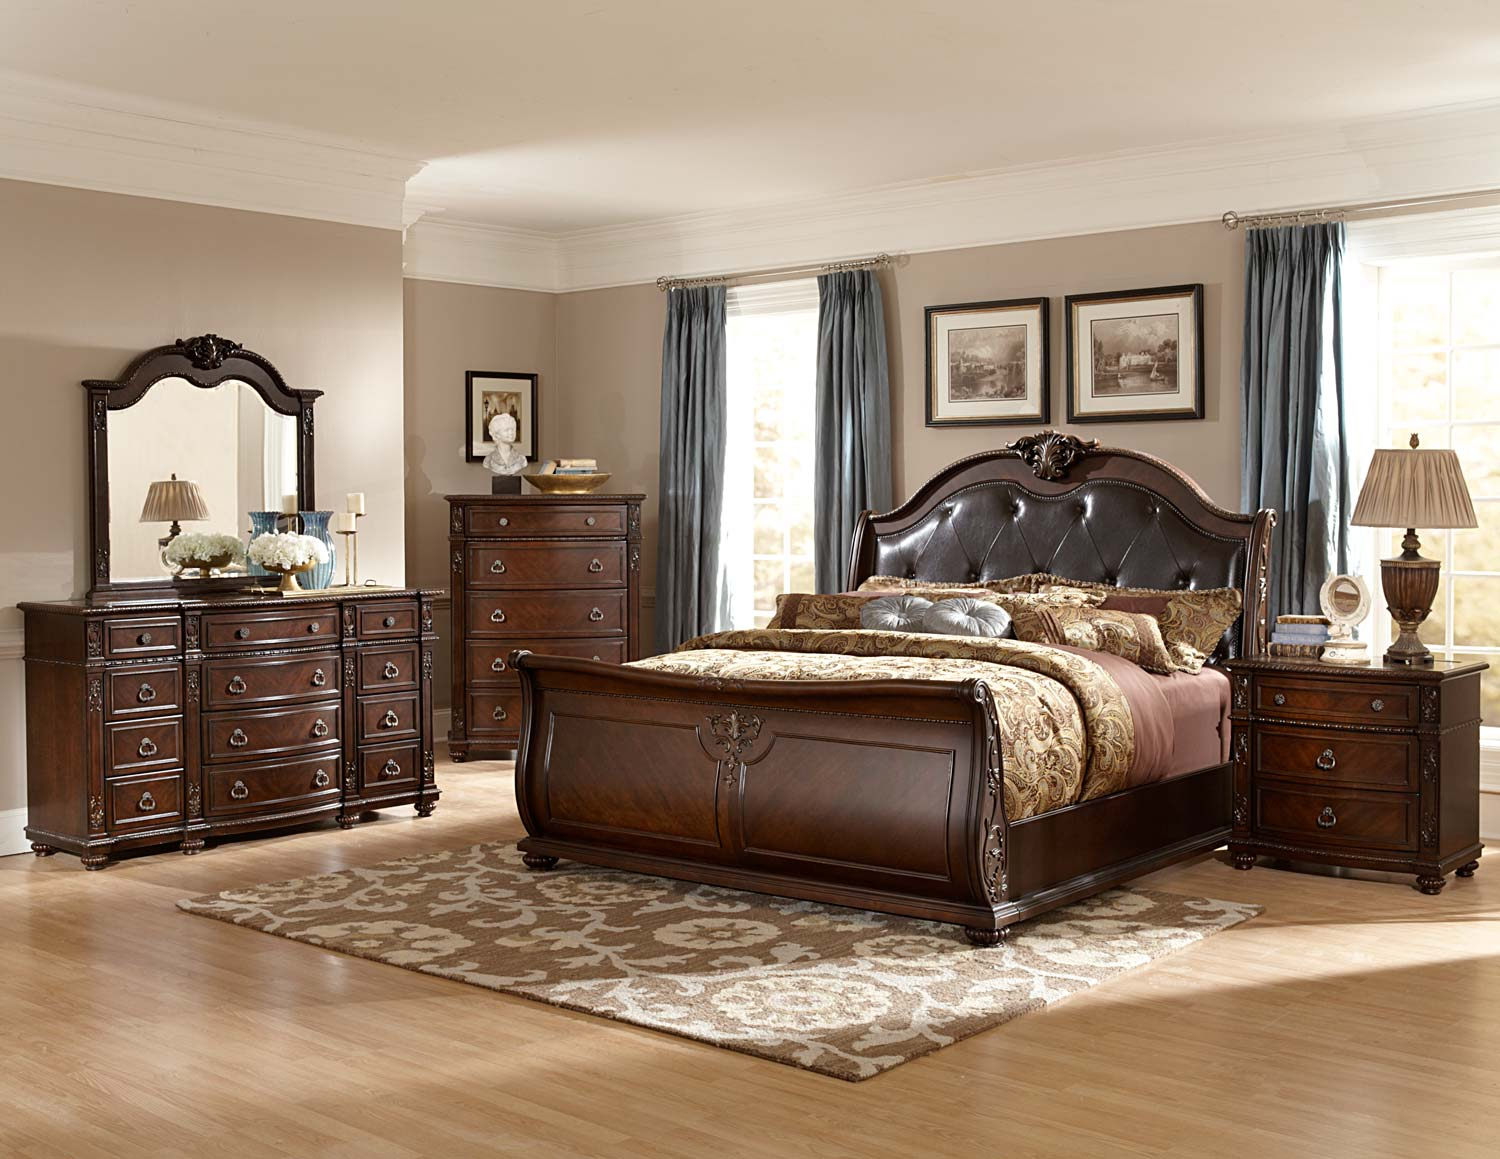 Homelegance Hillcrest Manor Sleigh Bedroom Set Cherry